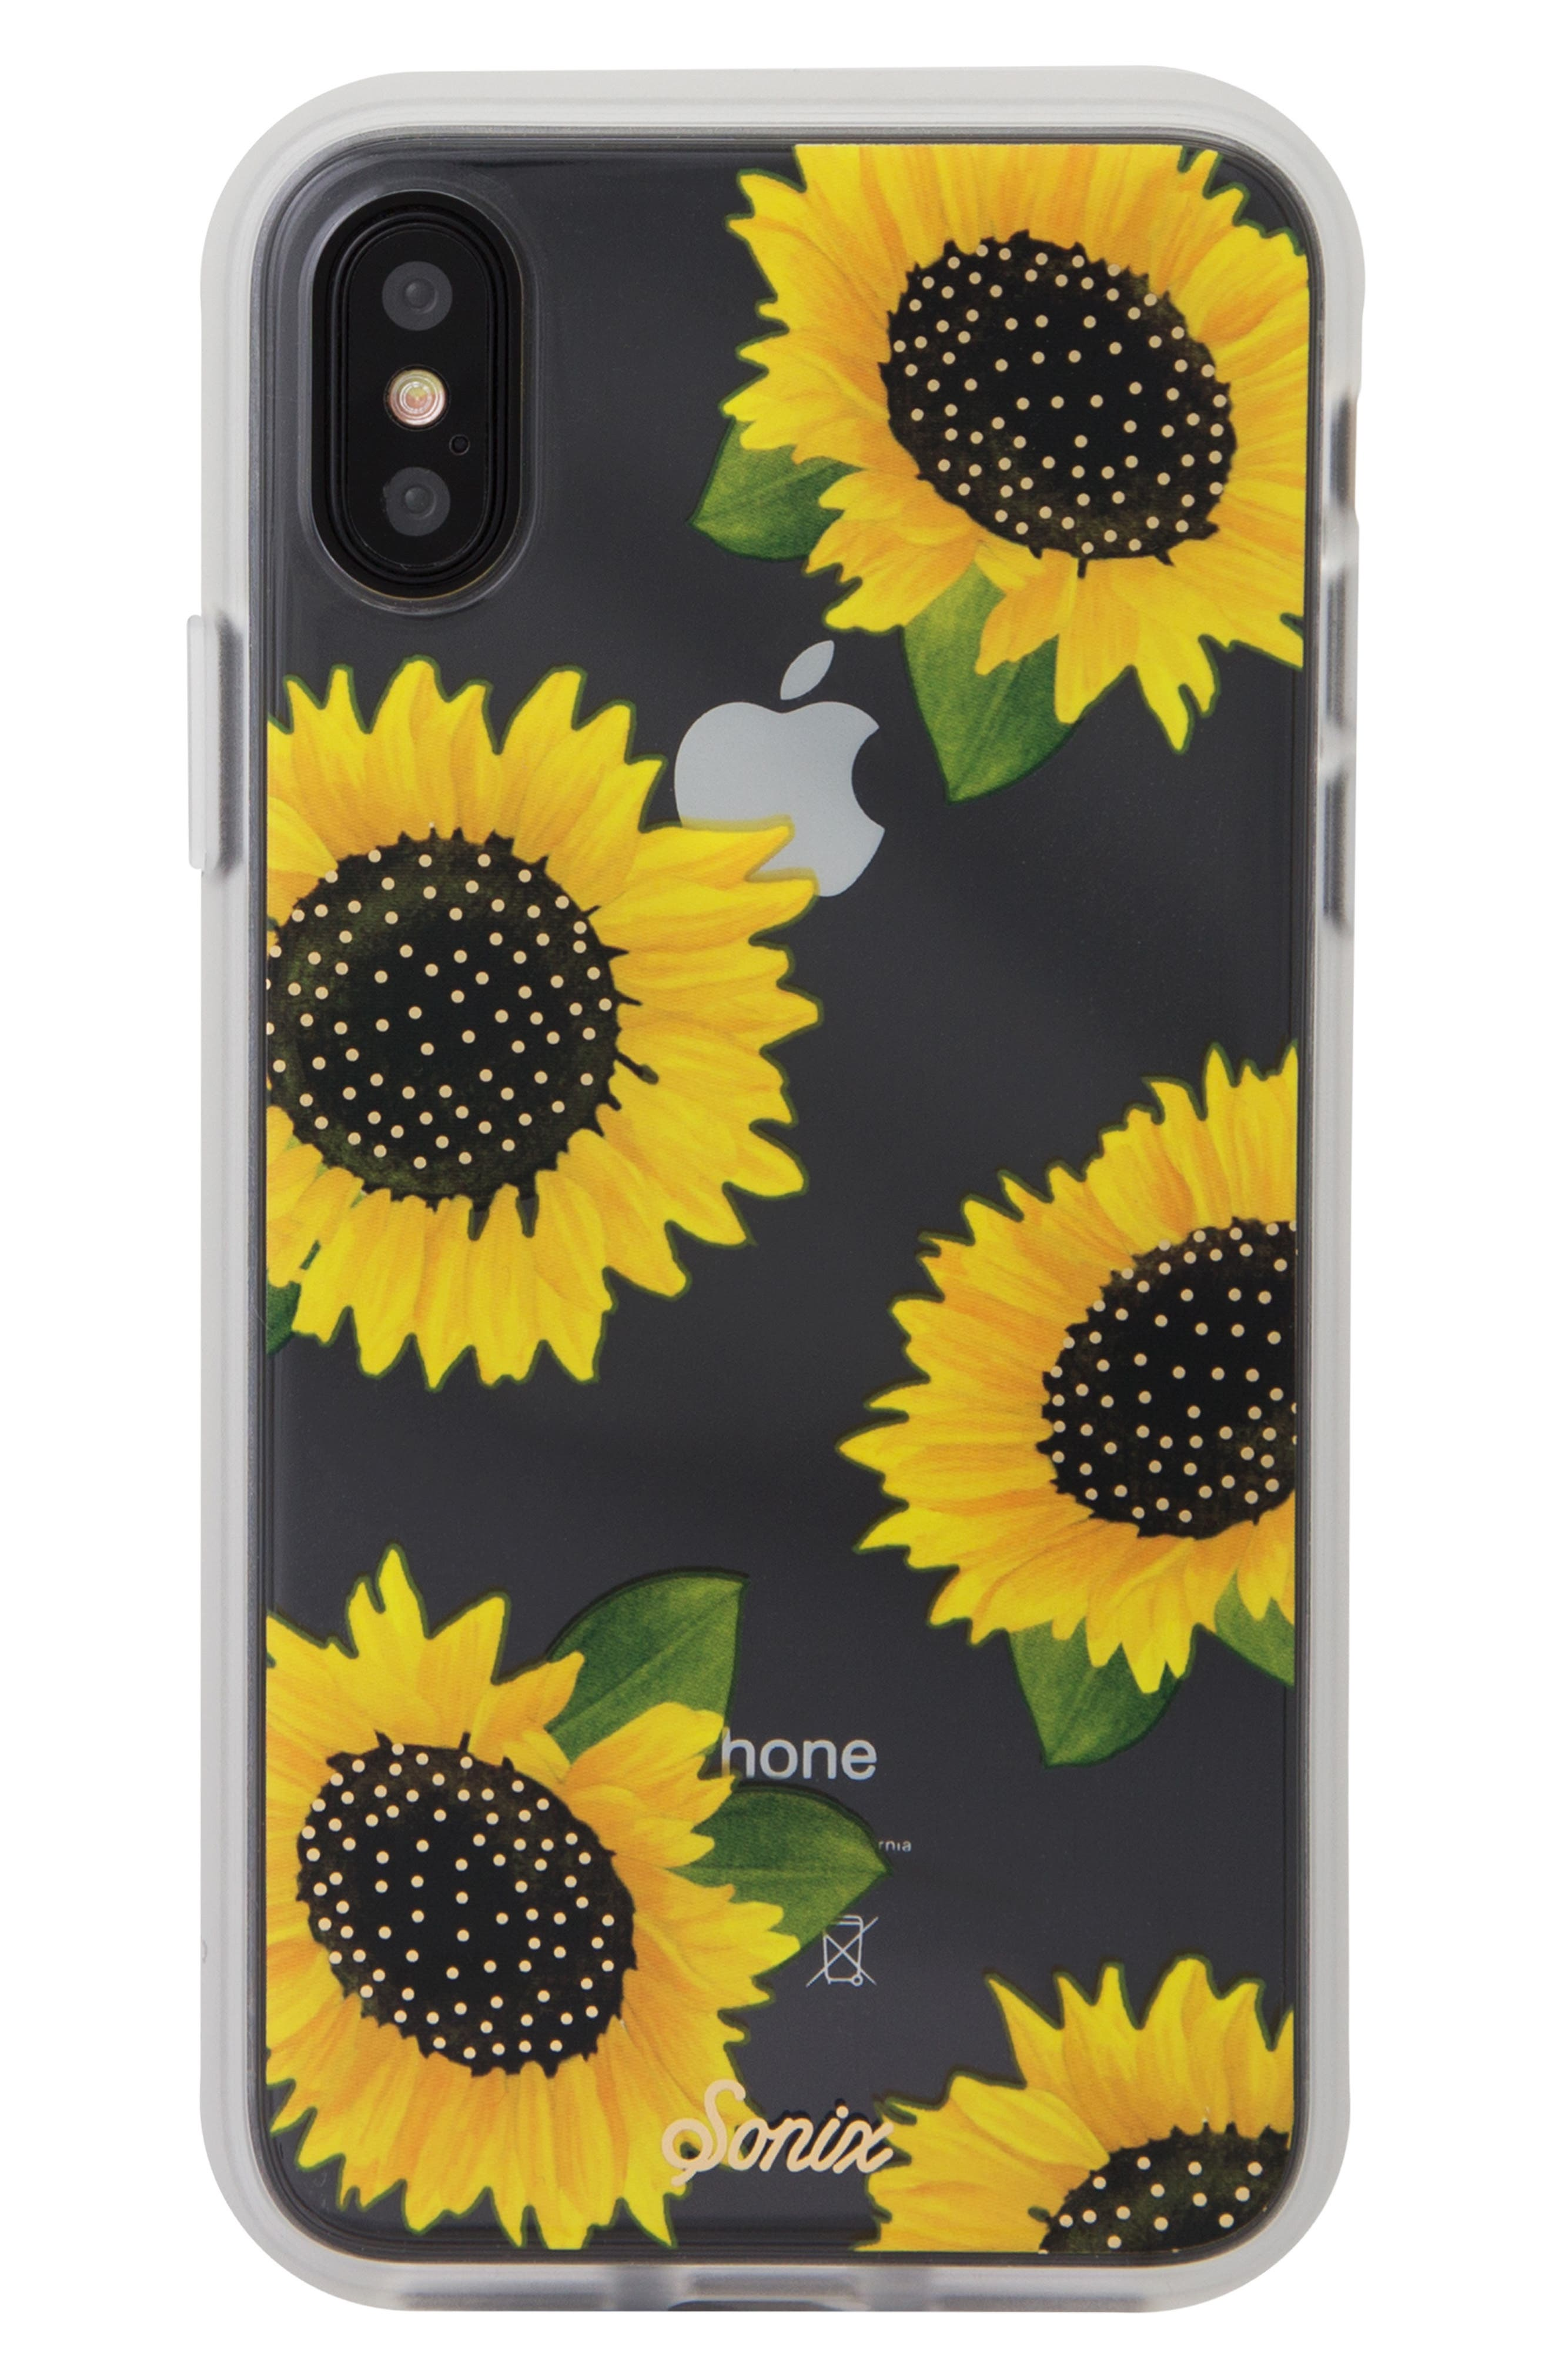 Sunflower iPhone X/Xs, XR & X Max Case,                             Main thumbnail 1, color,                             YELLOW